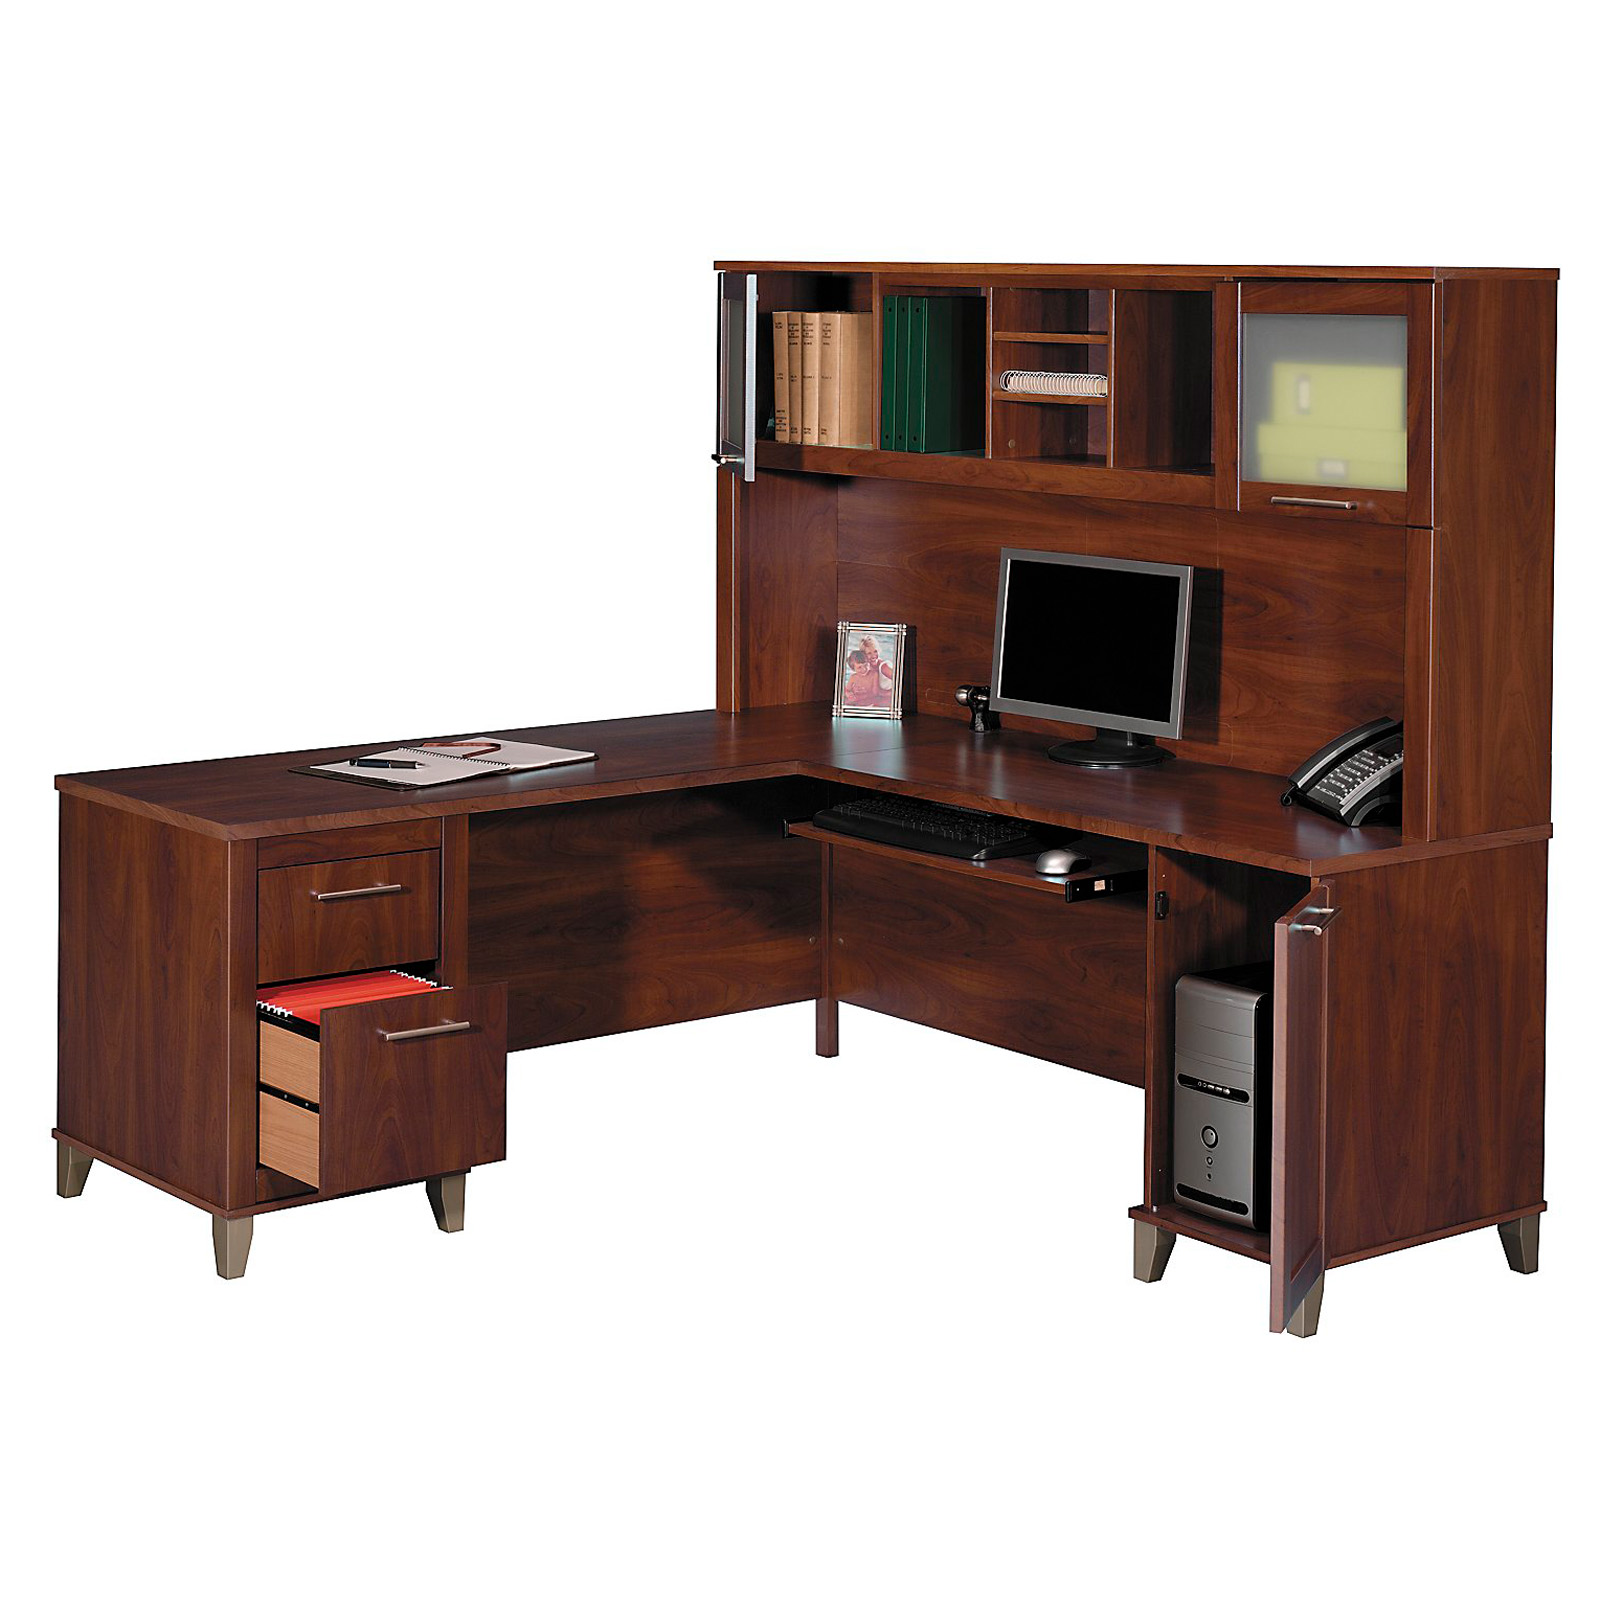 door magnetizing main hutch black of furniture idea desk racks also l computer shaped drawers the and as wooden brown room alluring with study dark